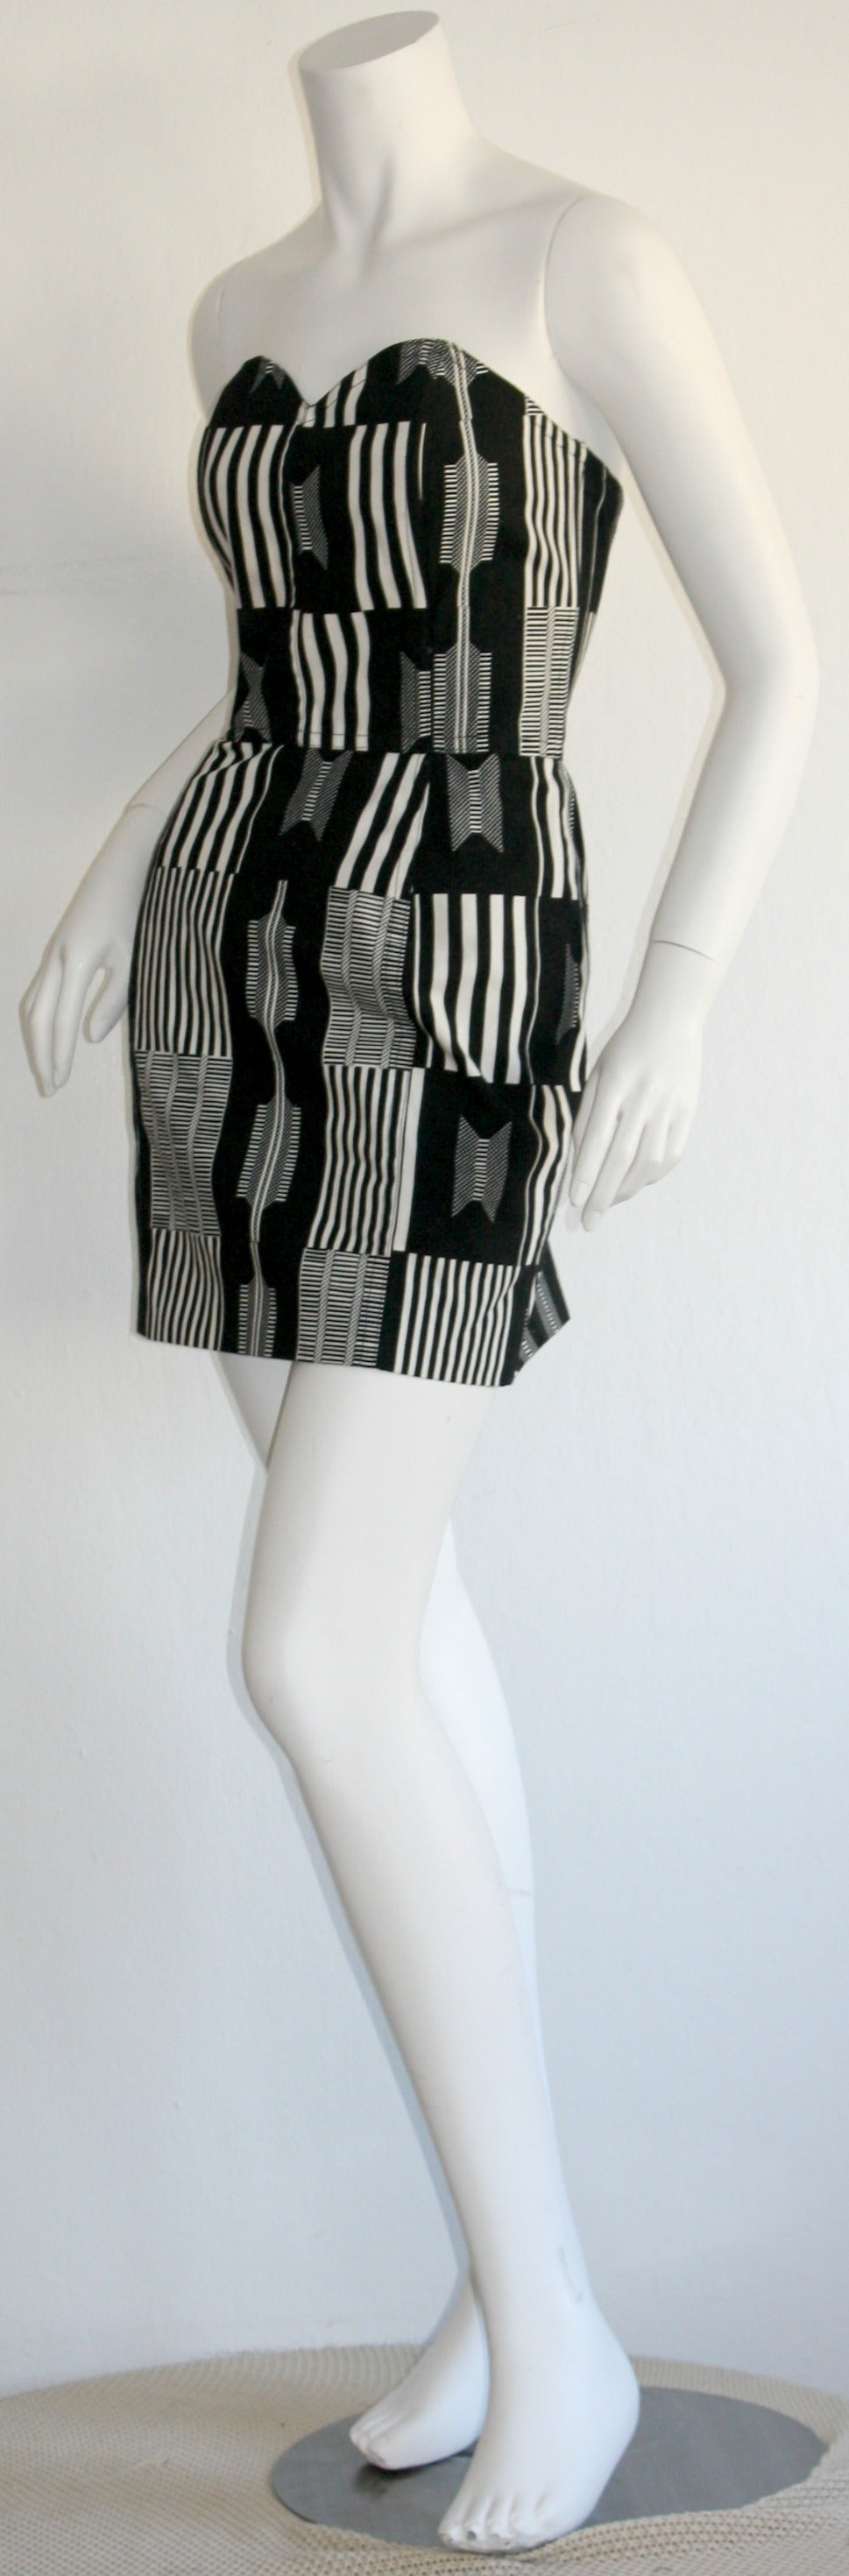 "Vintage Patrick Kelly "" Barcode "" Black & White Avant Garde Mini Dress In Excellent Condition For Sale In San Francisco, CA"